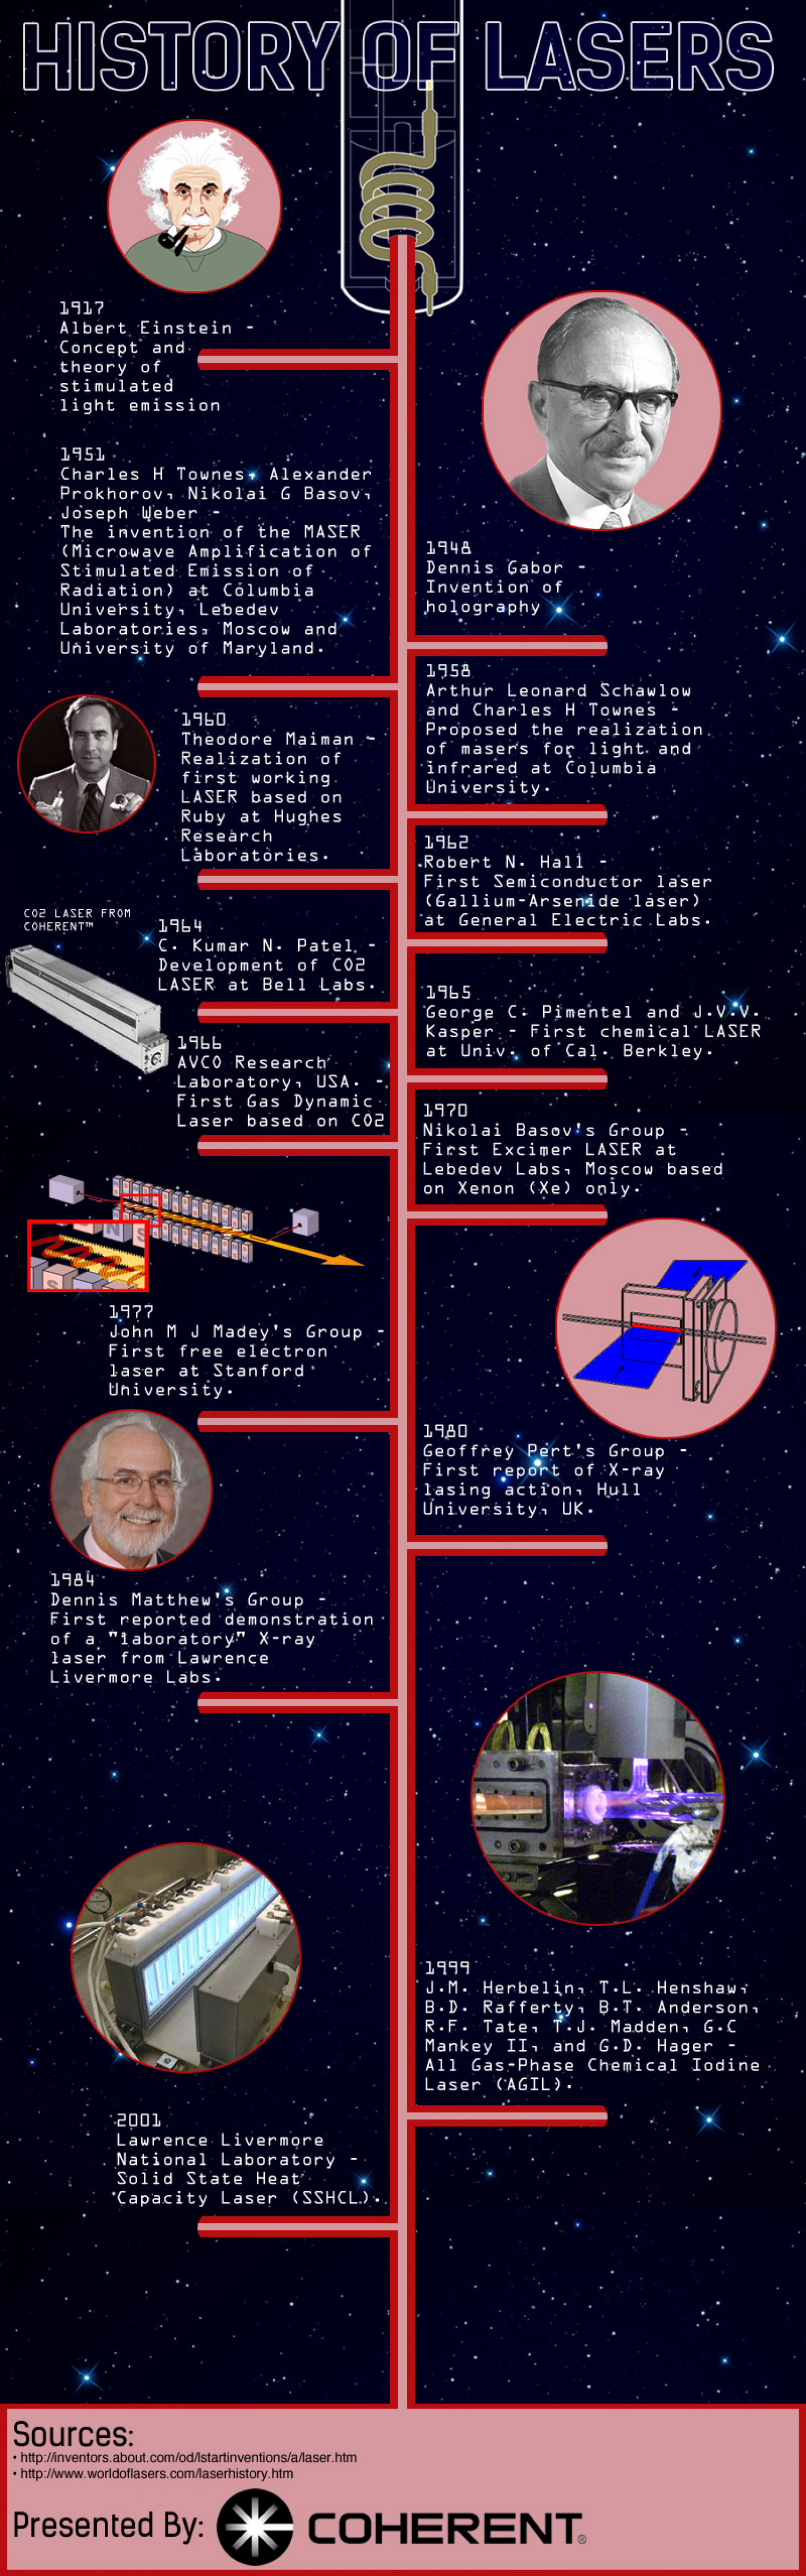 History of Lasers | Visual.ly